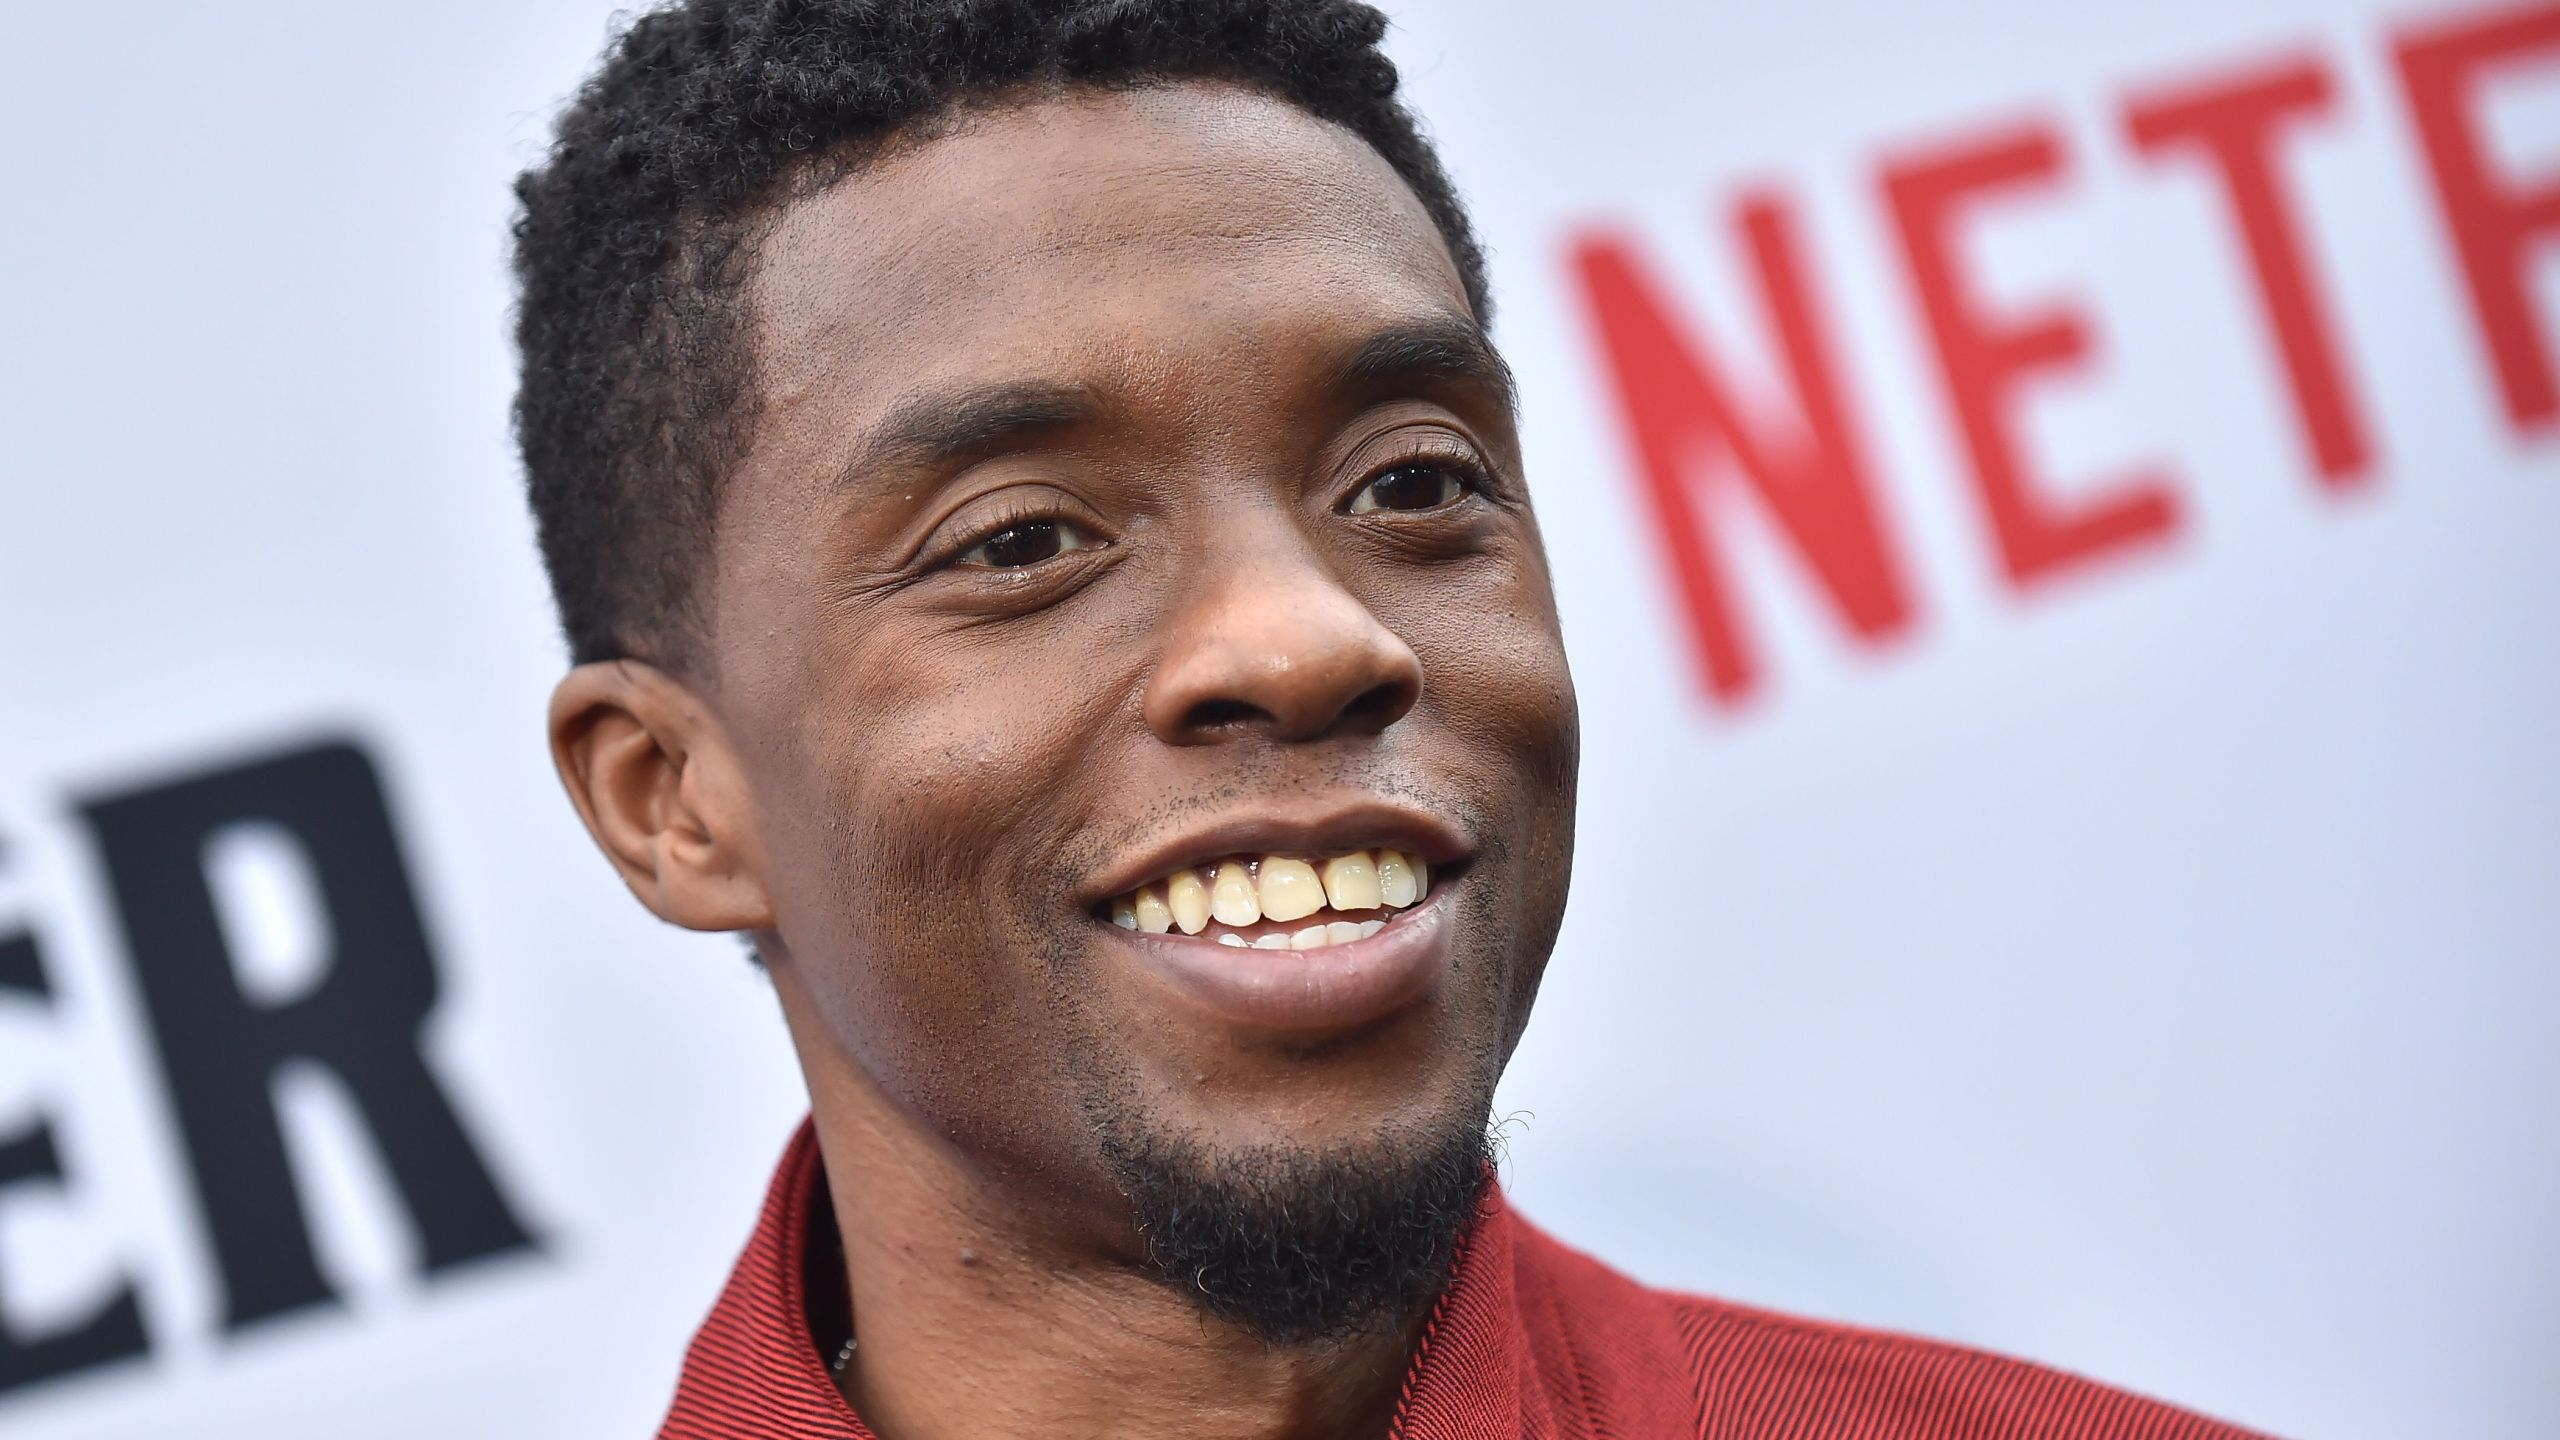 """U.S. actor Chadwick Boseman attends Netflix's """"The Black Godfather"""" premiere at Paramount Studios Theatre on June 3, 2019 in Los Angeles. (LISA O'CONNOR / AFP via Getty Images)"""